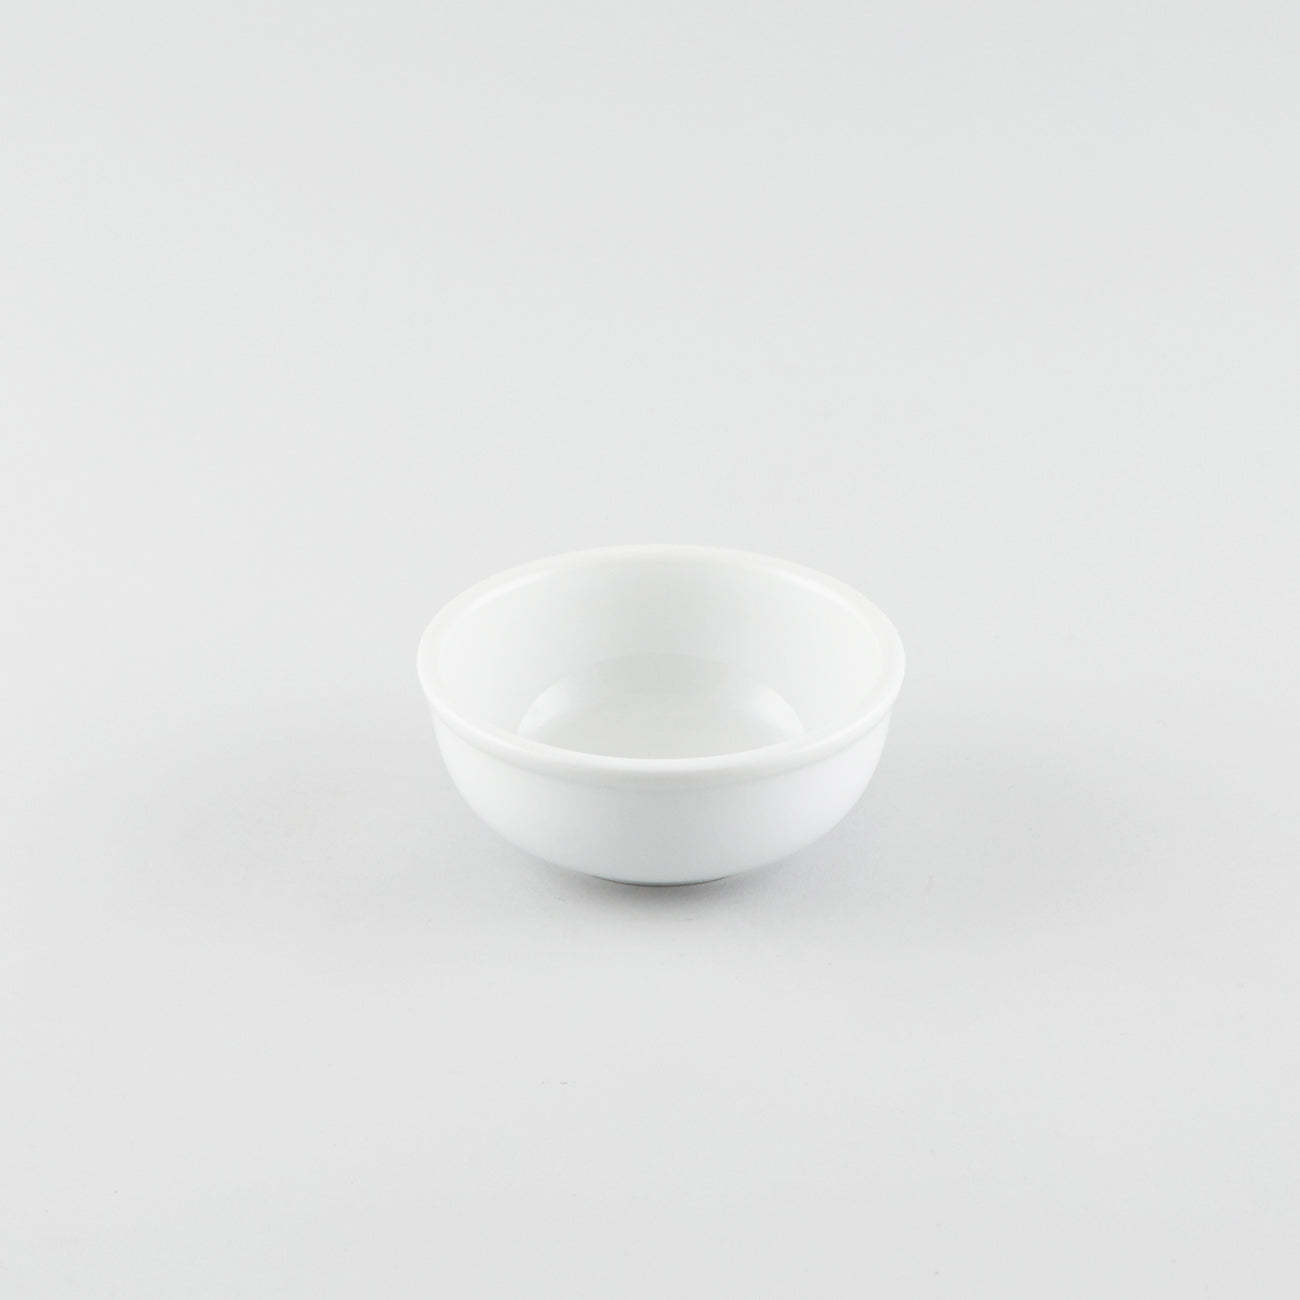 Rounded Side Bowl - White (S) 14 fl oz.